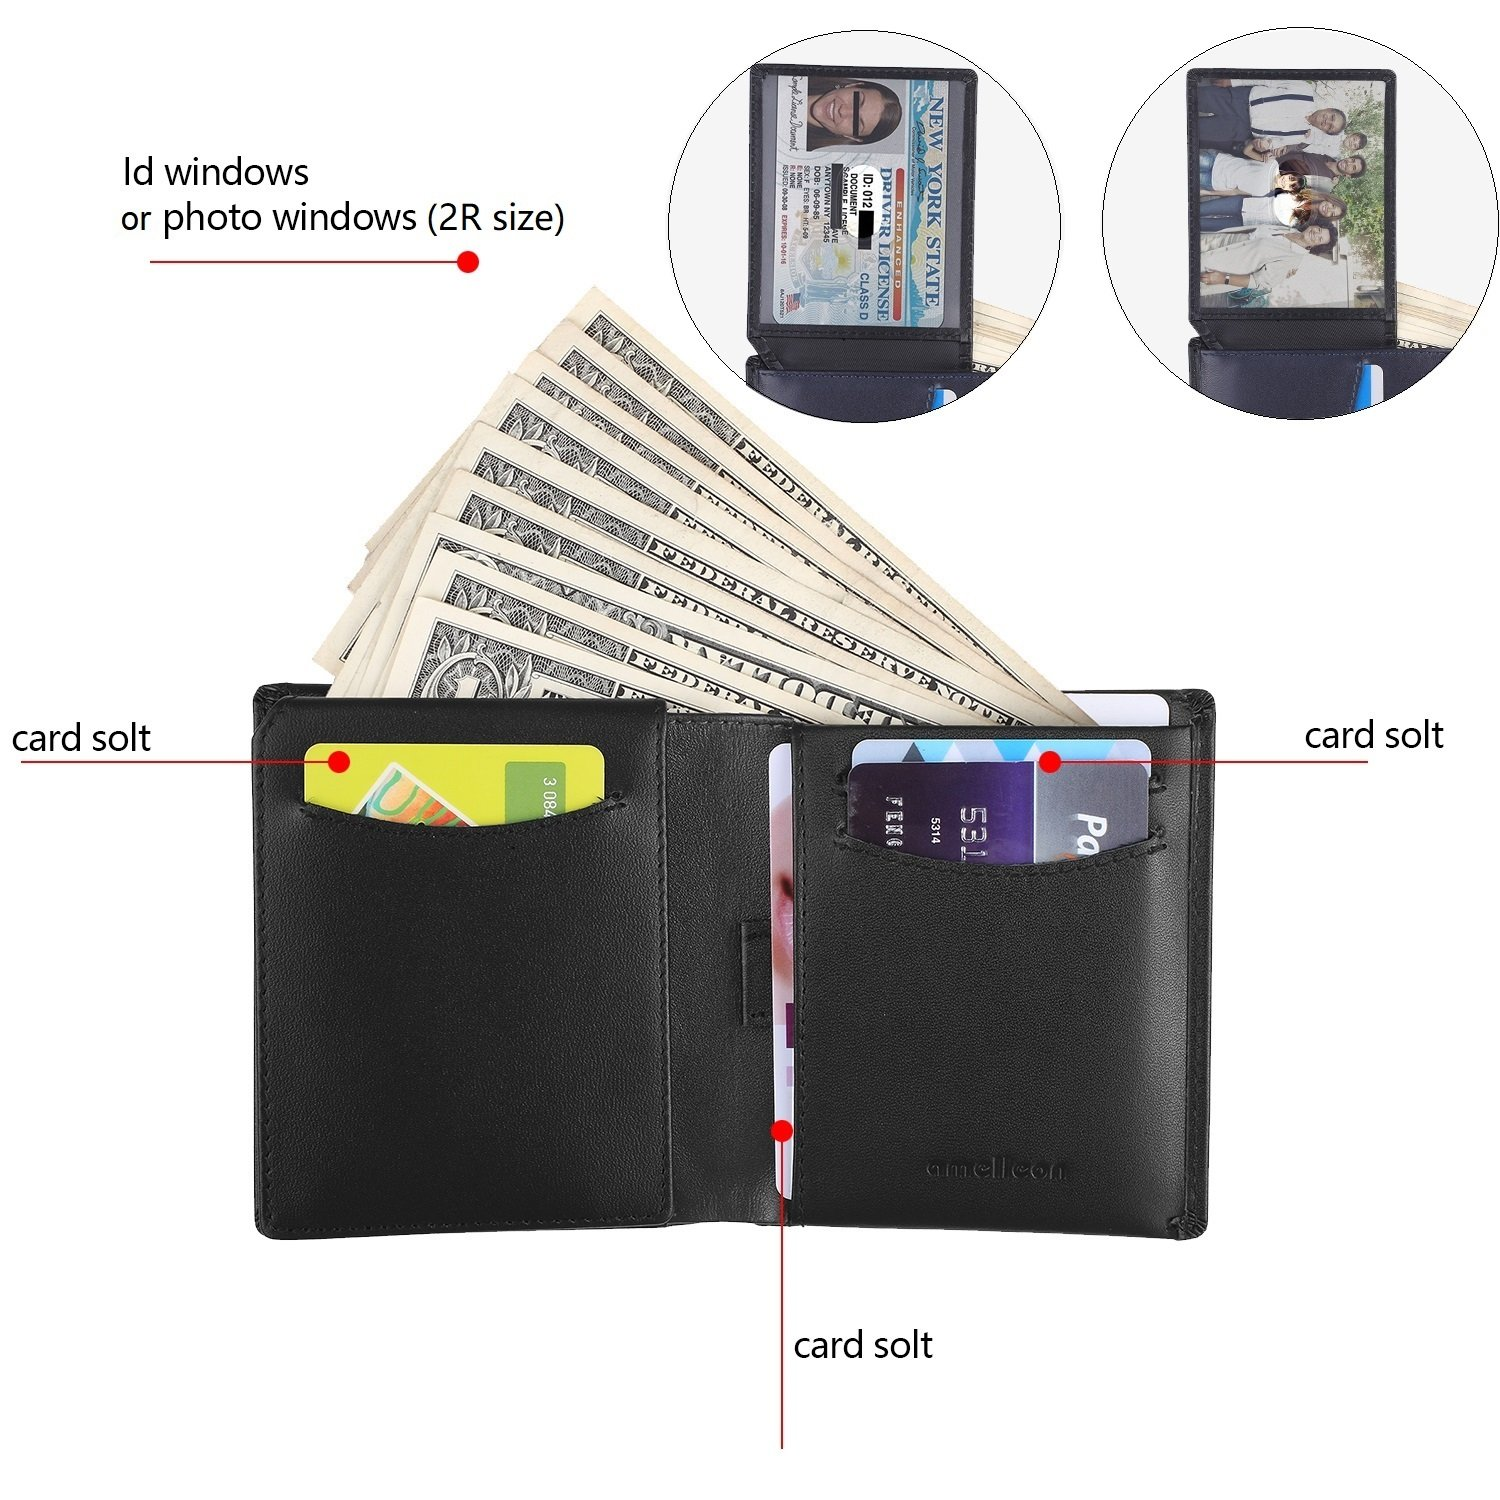 Amelleon Trifold Bifold Genuine Leather RFID Wallets for Men – ID & Photo Window,10 Credit Card Slots,Bill & Coin Pockets-For Work,Travel,Gift&More (Black) by amelleon (Image #3)